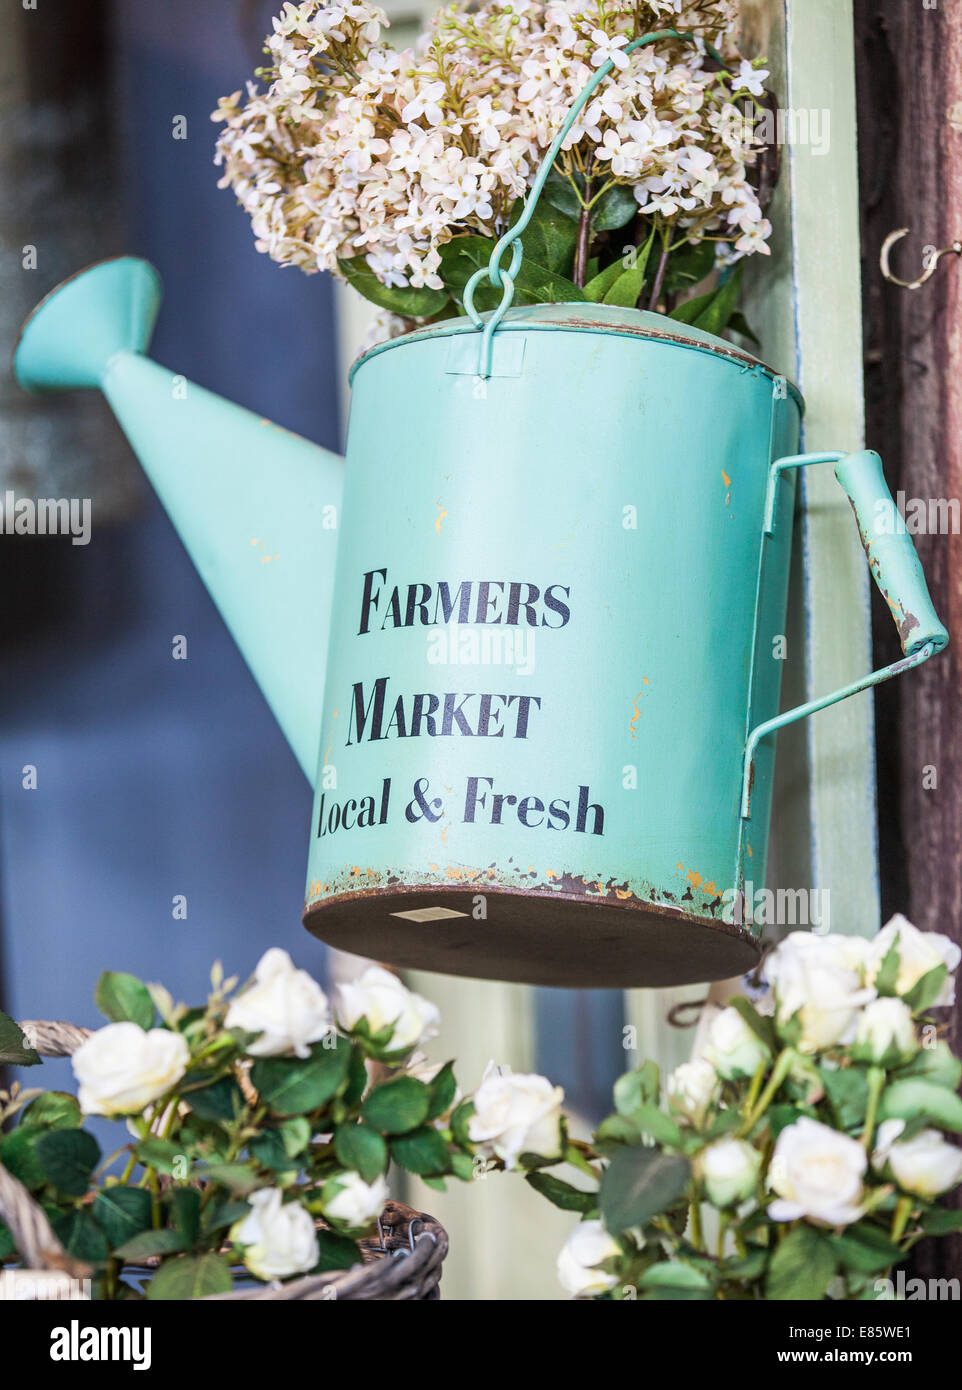 A decorative watering can with 'farmer's market' painted on the side - Stock Image